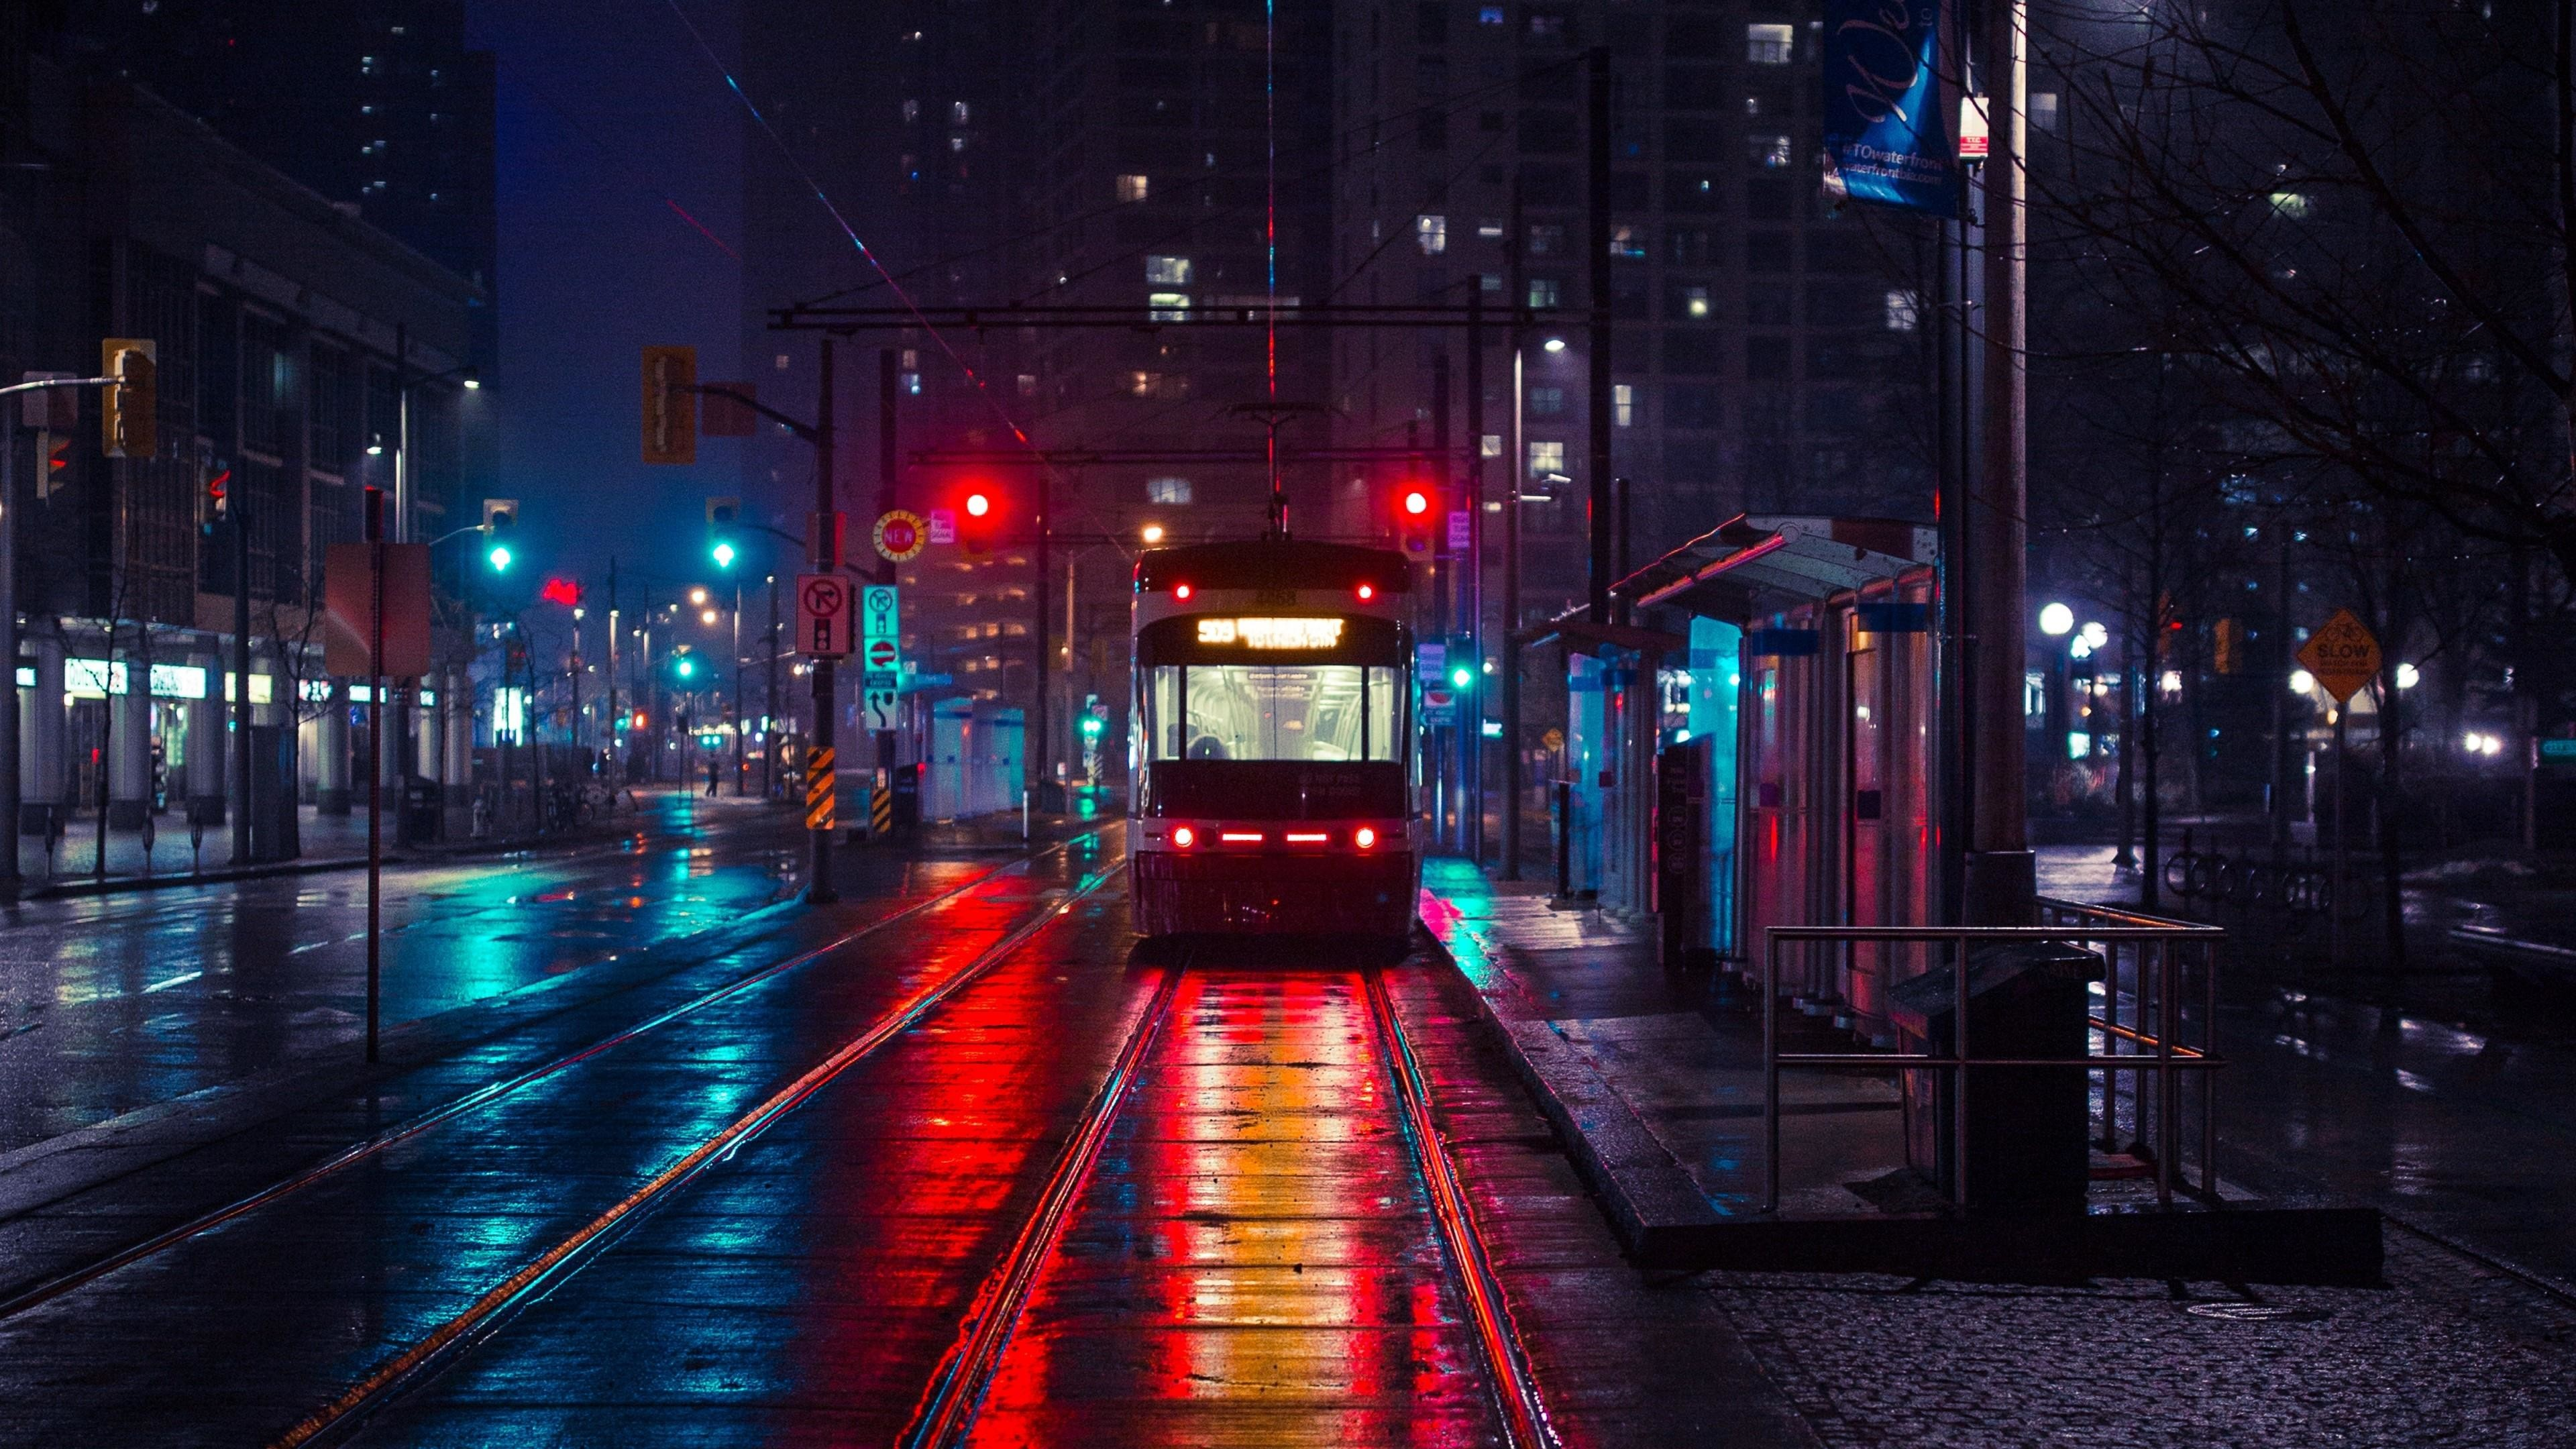 3840x2160 Tram In The Night City Wallpaper Night City 2840625 Hd Wallpaper Backgrounds Download